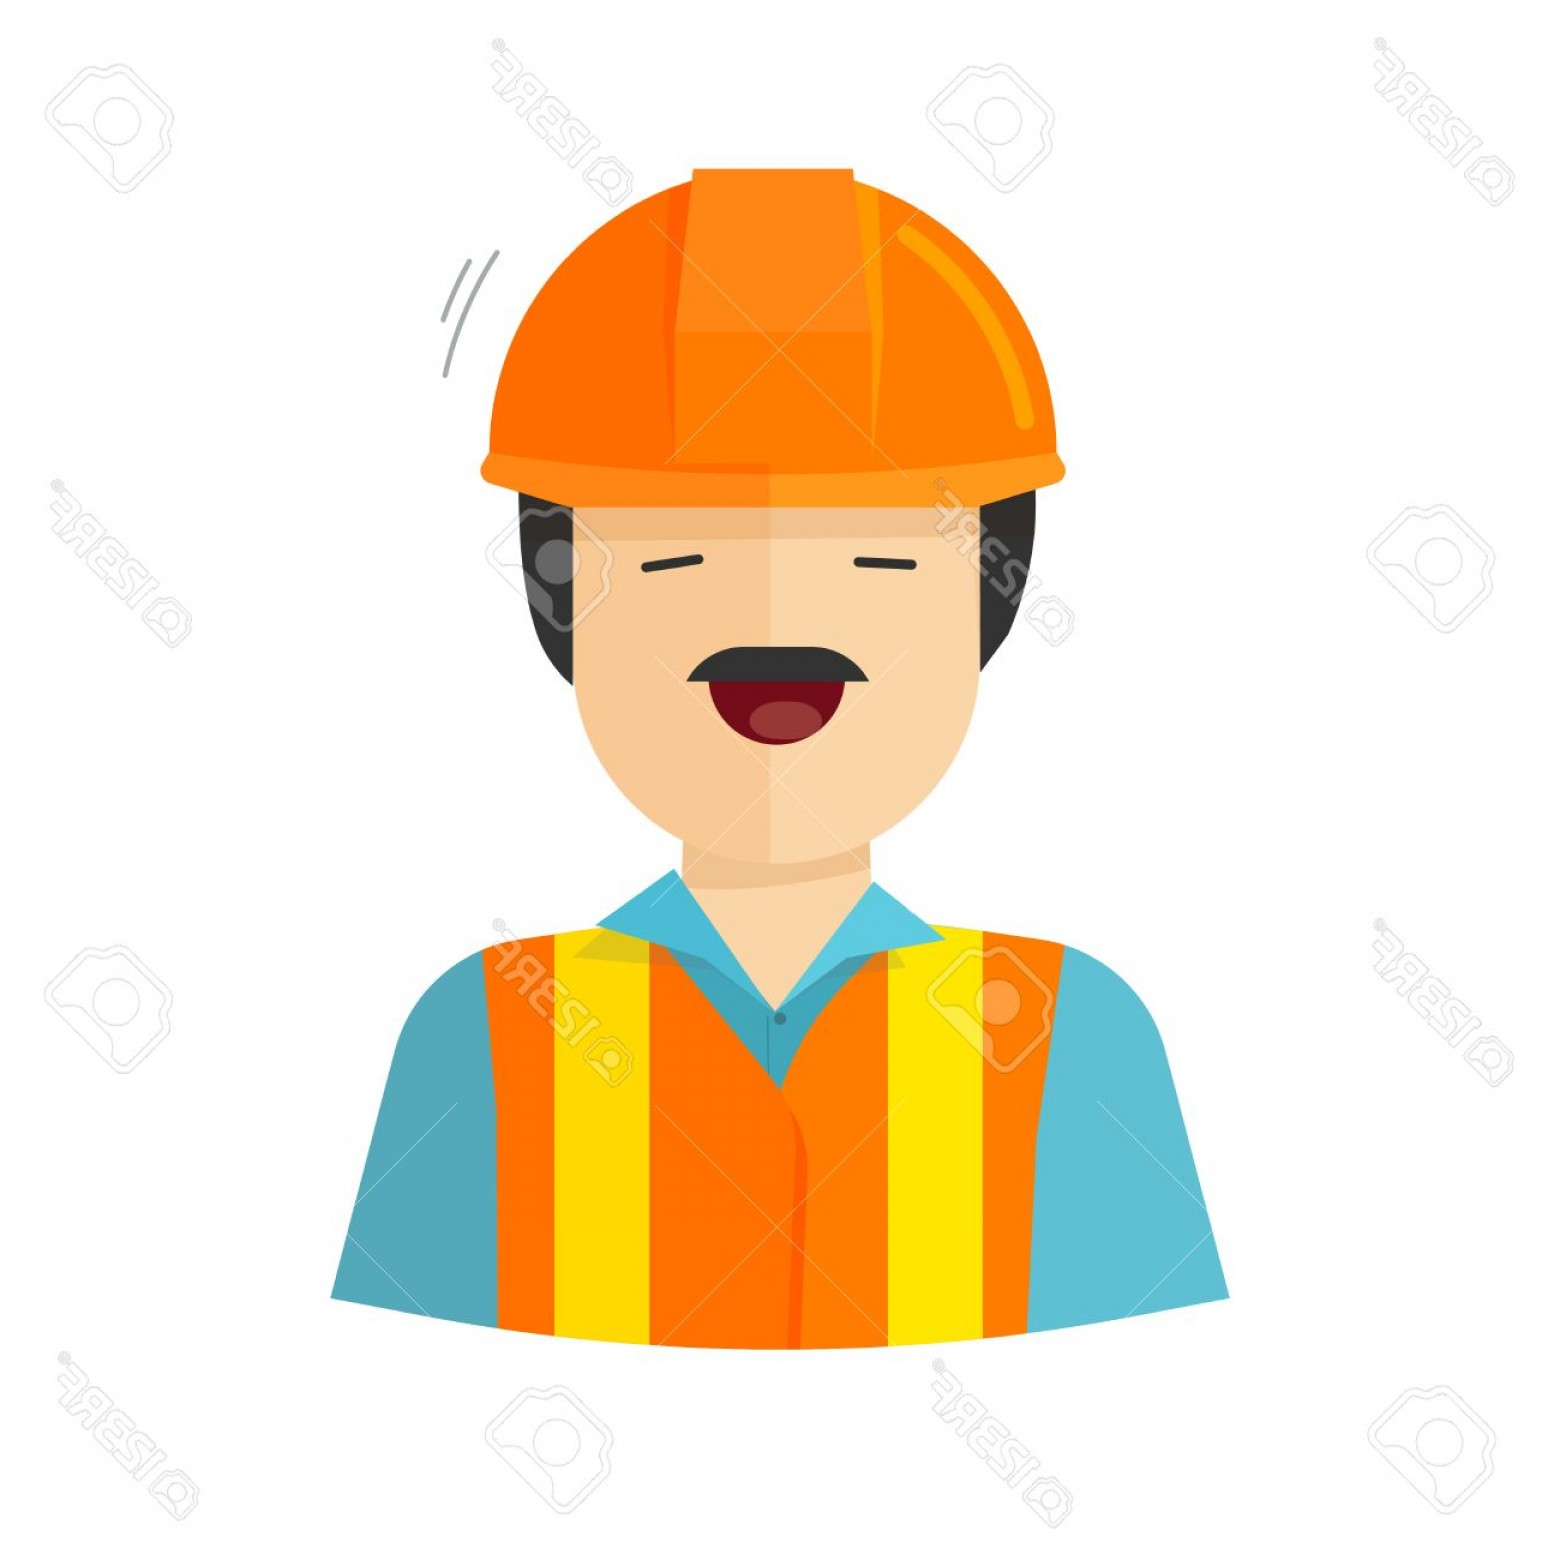 Worker Vector: Photostock Vector Worker Vector Illustration Isolated On White Background Construction Builder Character In Helmet Wor